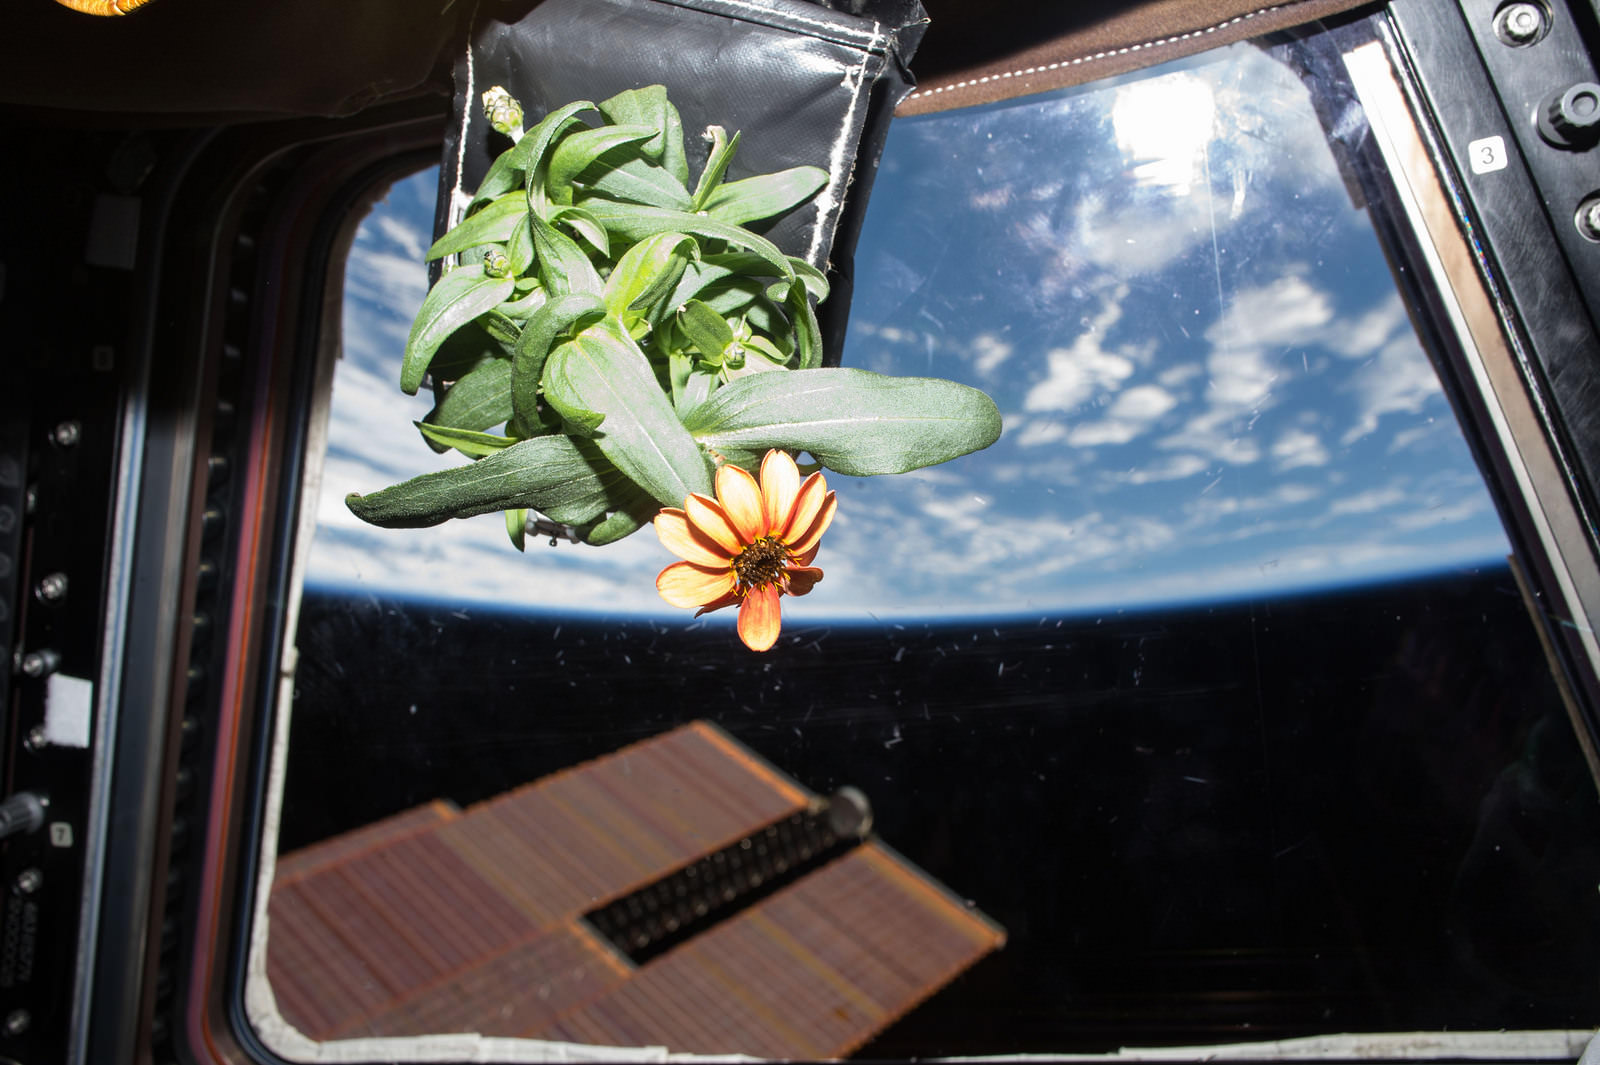 Photo of first ever blooming space Zinnia flower grown onboard the International Space Station's Veggie facility moved to catch the sun's rays through the windows of the Cupola backdropped by Earth.  Credit: NASA/Scott Kelly/@StationCDRKelly